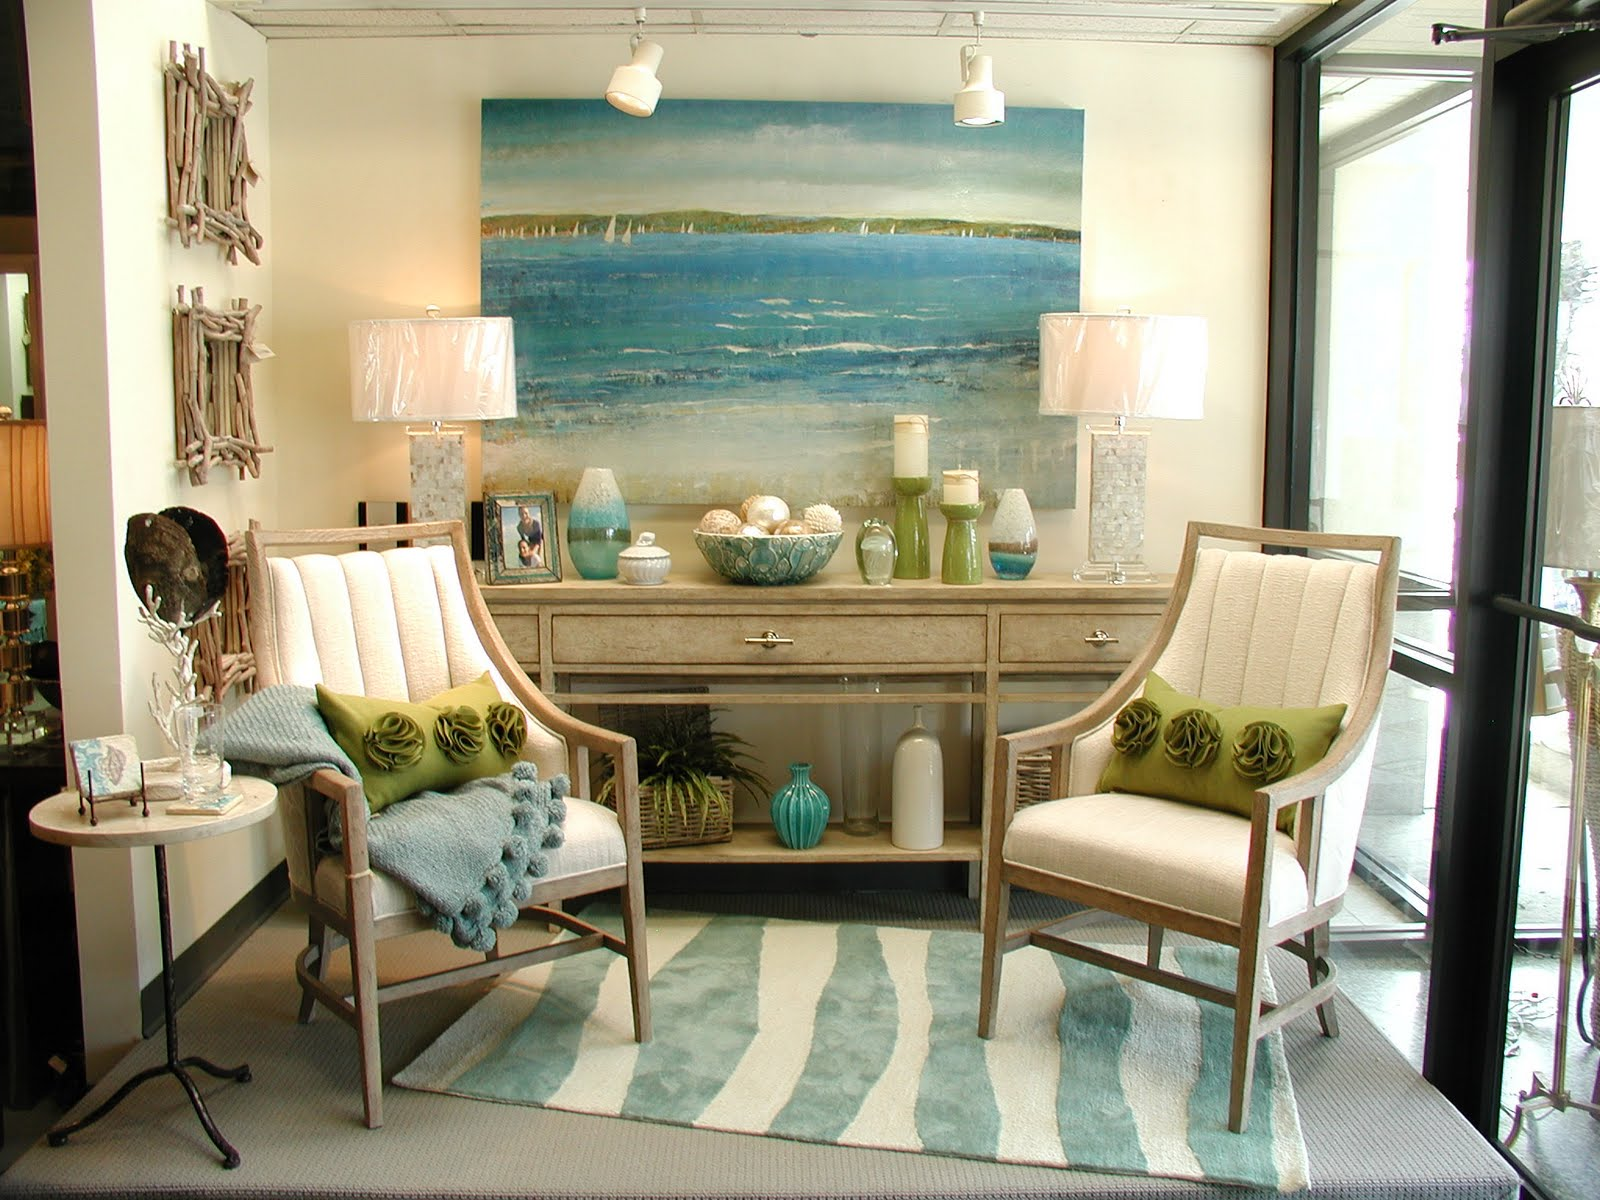 Details of design interior design in annapolis this summer for Home decor interior design